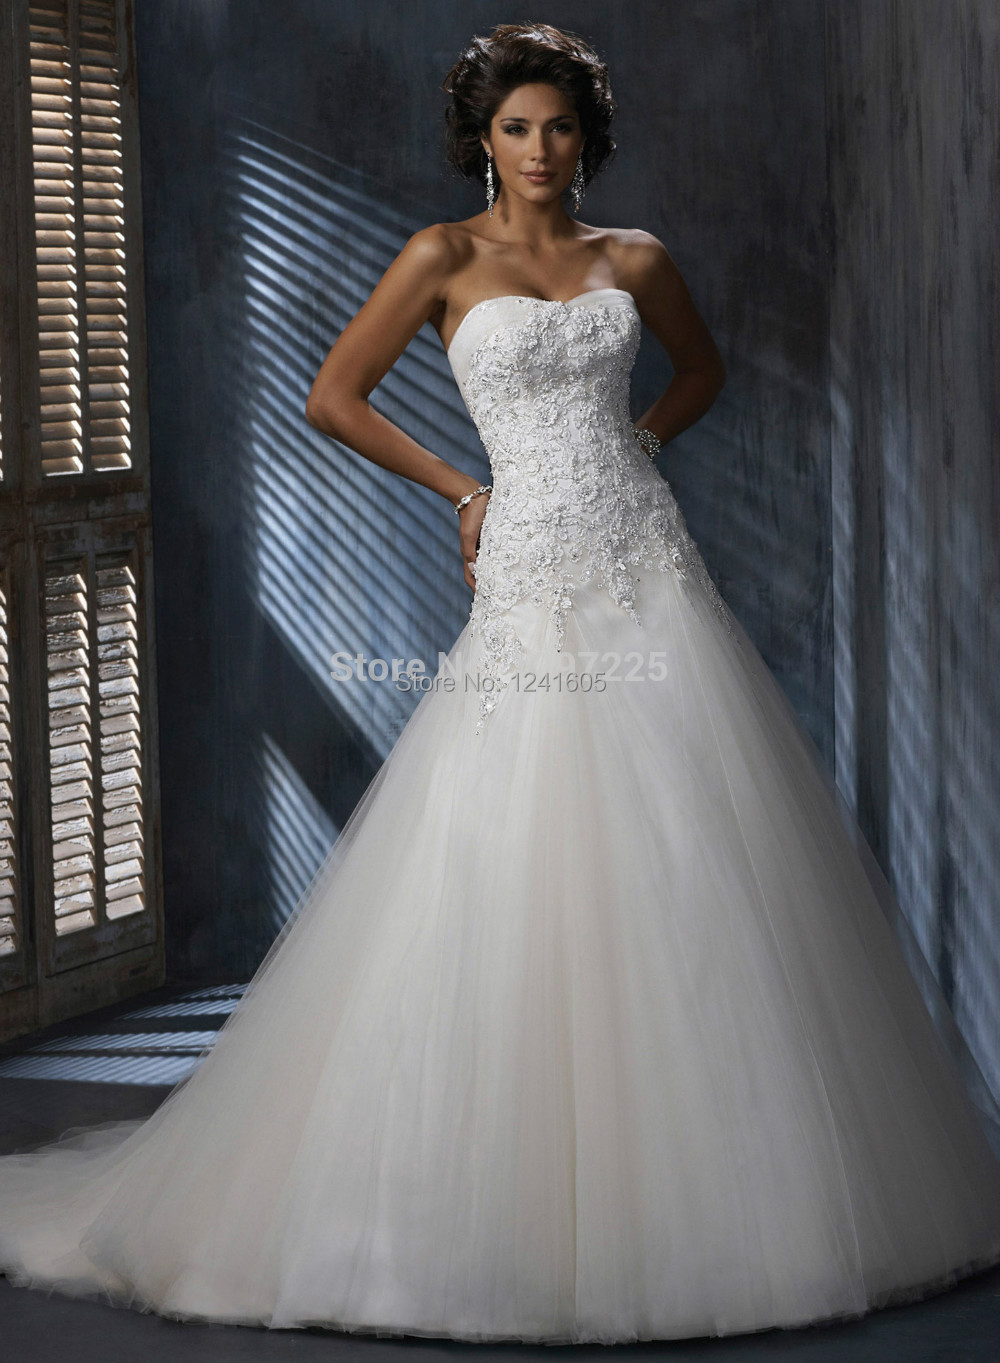 Wedding Dresses Wholesale : Bridal wedding dress gown free shipping in dresses from